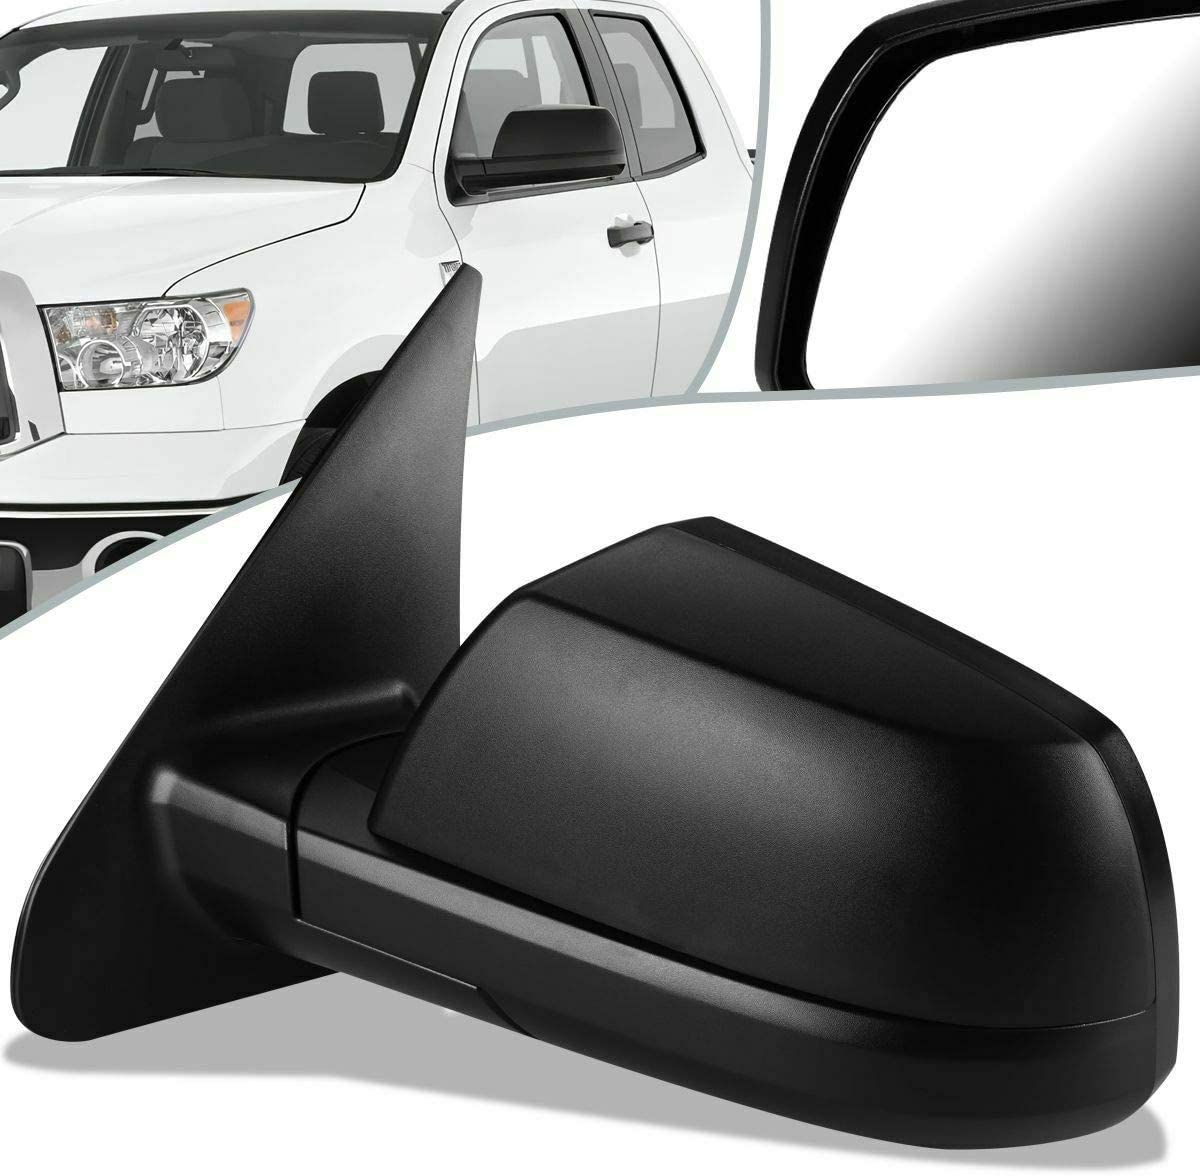 Attention brand NEW Towing Ranking TOP5 Mirrors Compatible with 07-13 Tundra 08-13 Sequoia Cr